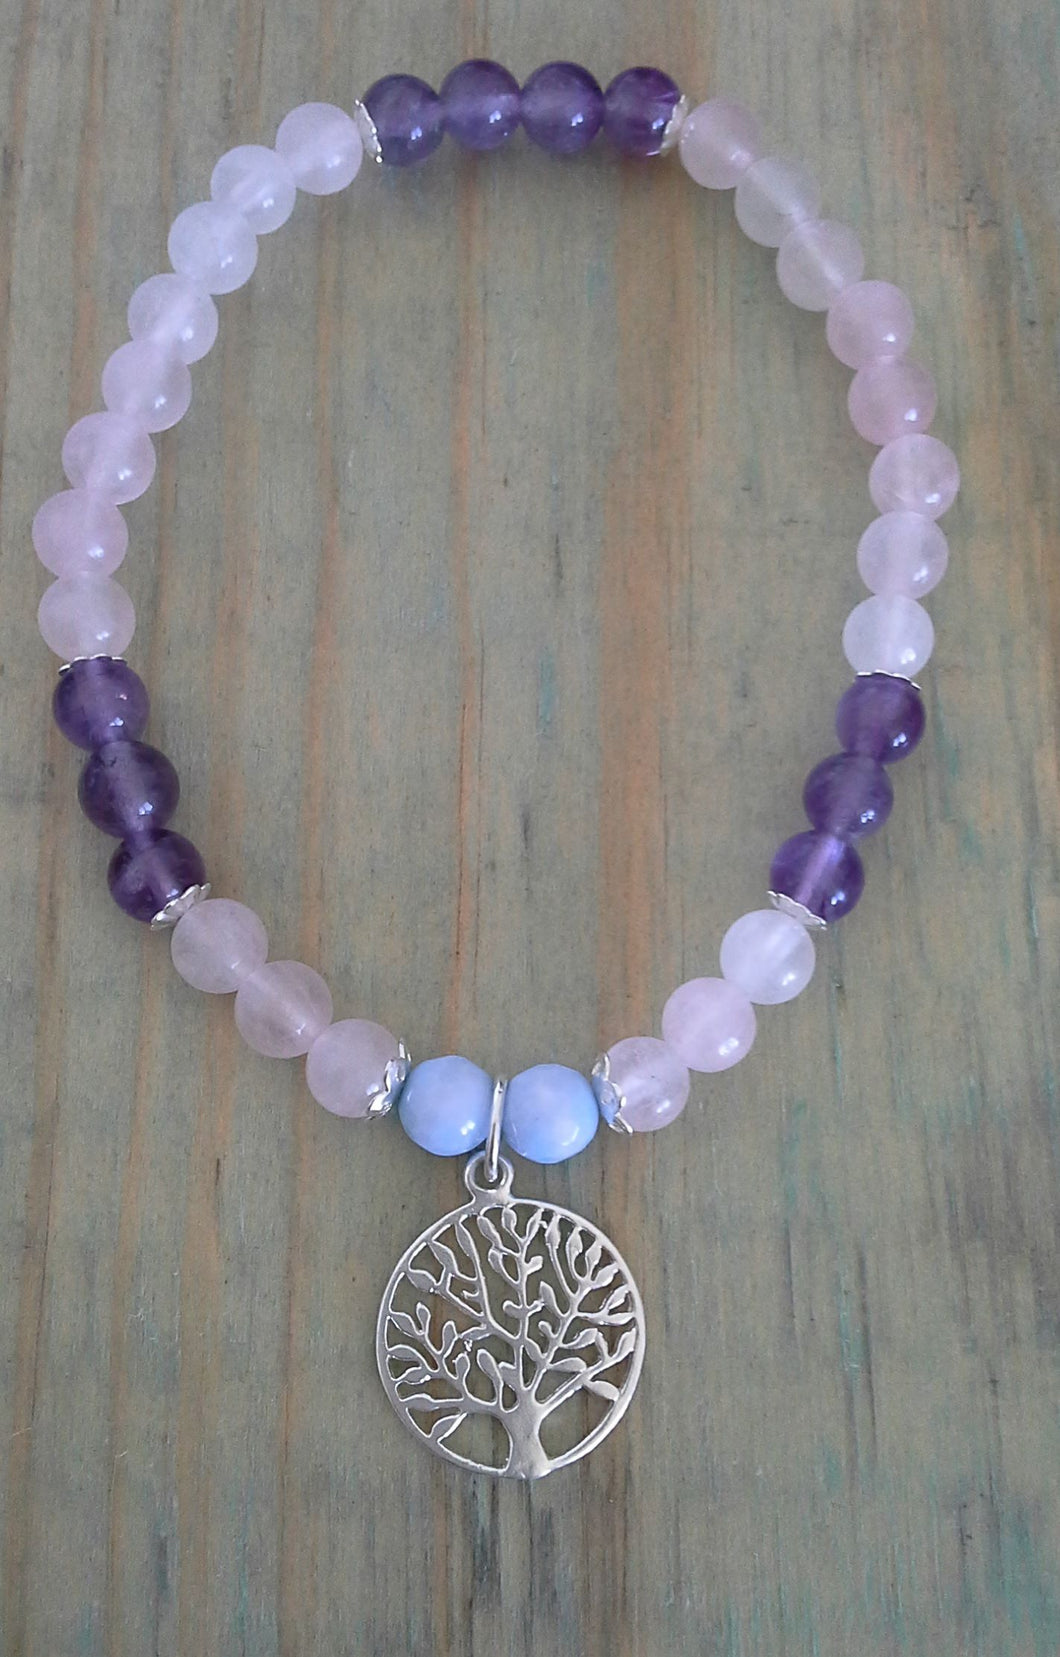 925 Sterling Silver Bracelet with Tree of Life Charm - Rose Quartz, Amethyst & Blue Lace Agate - Gina's Charms